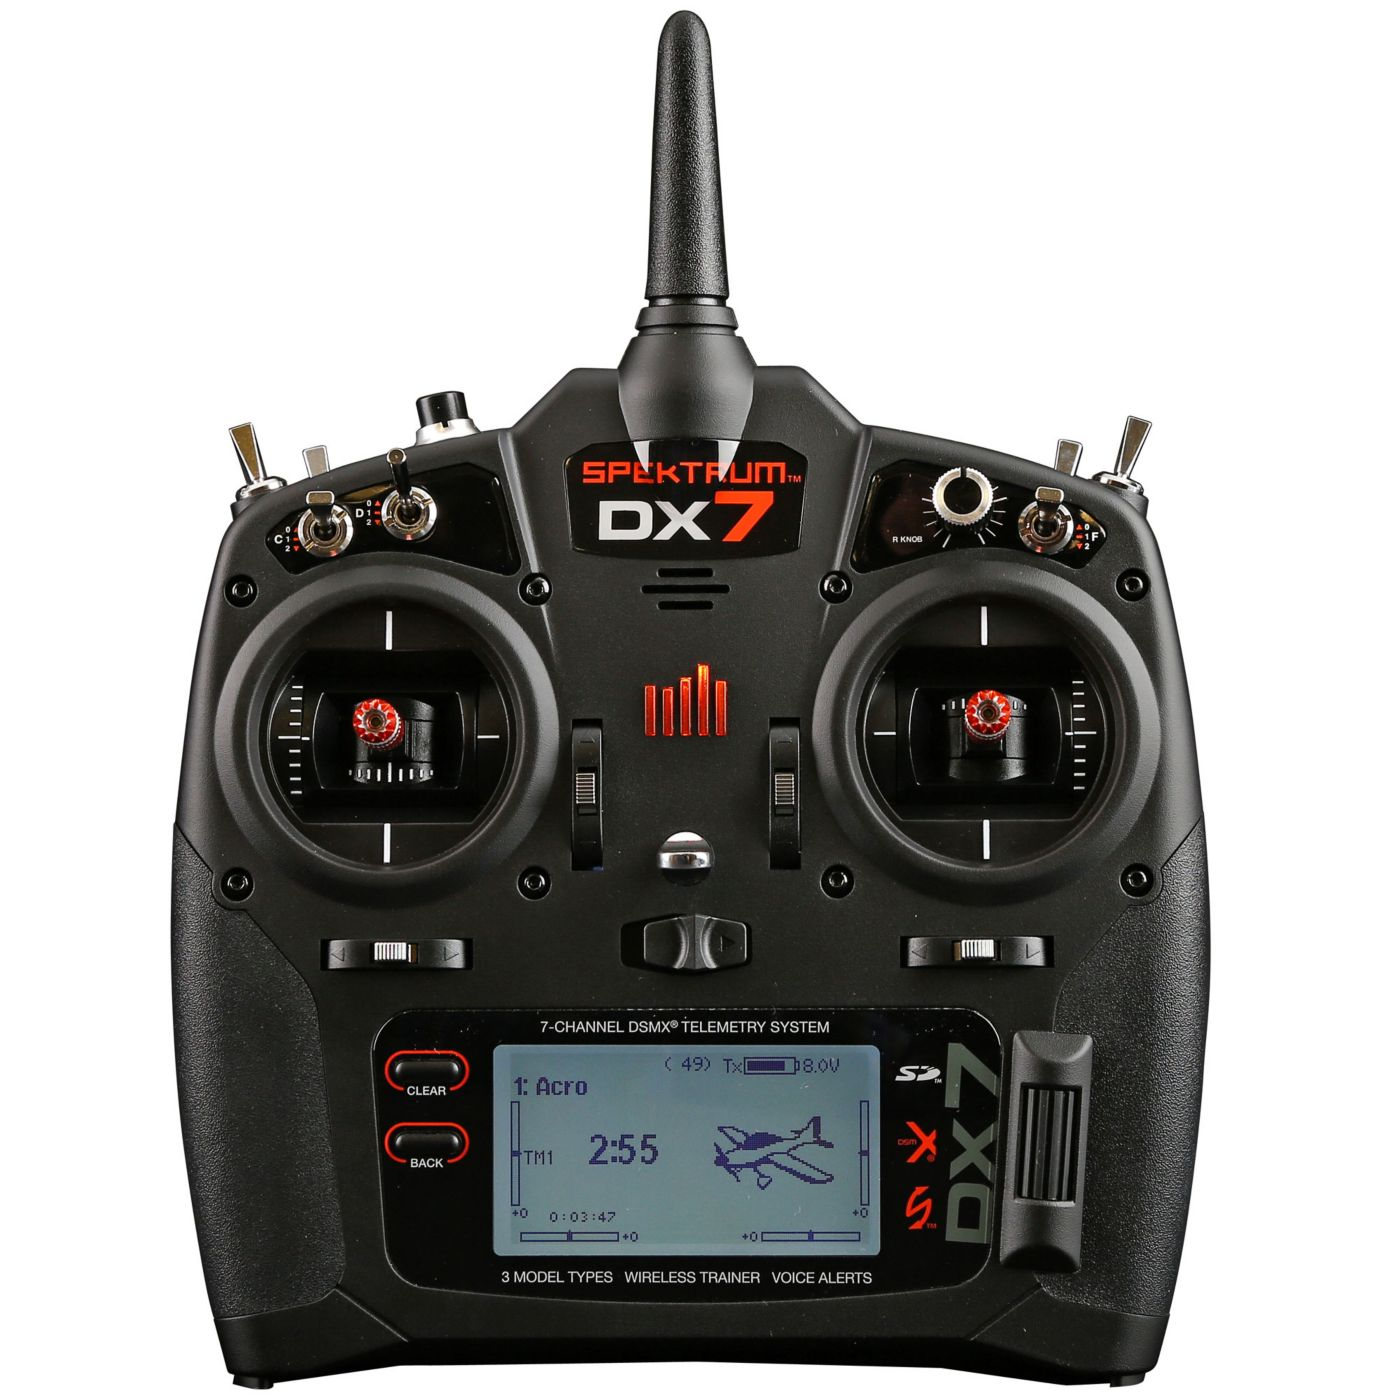 medium resolution of image for dx7 7 channel dsmx transmitter gen 2 with ar8000 mode 2 from